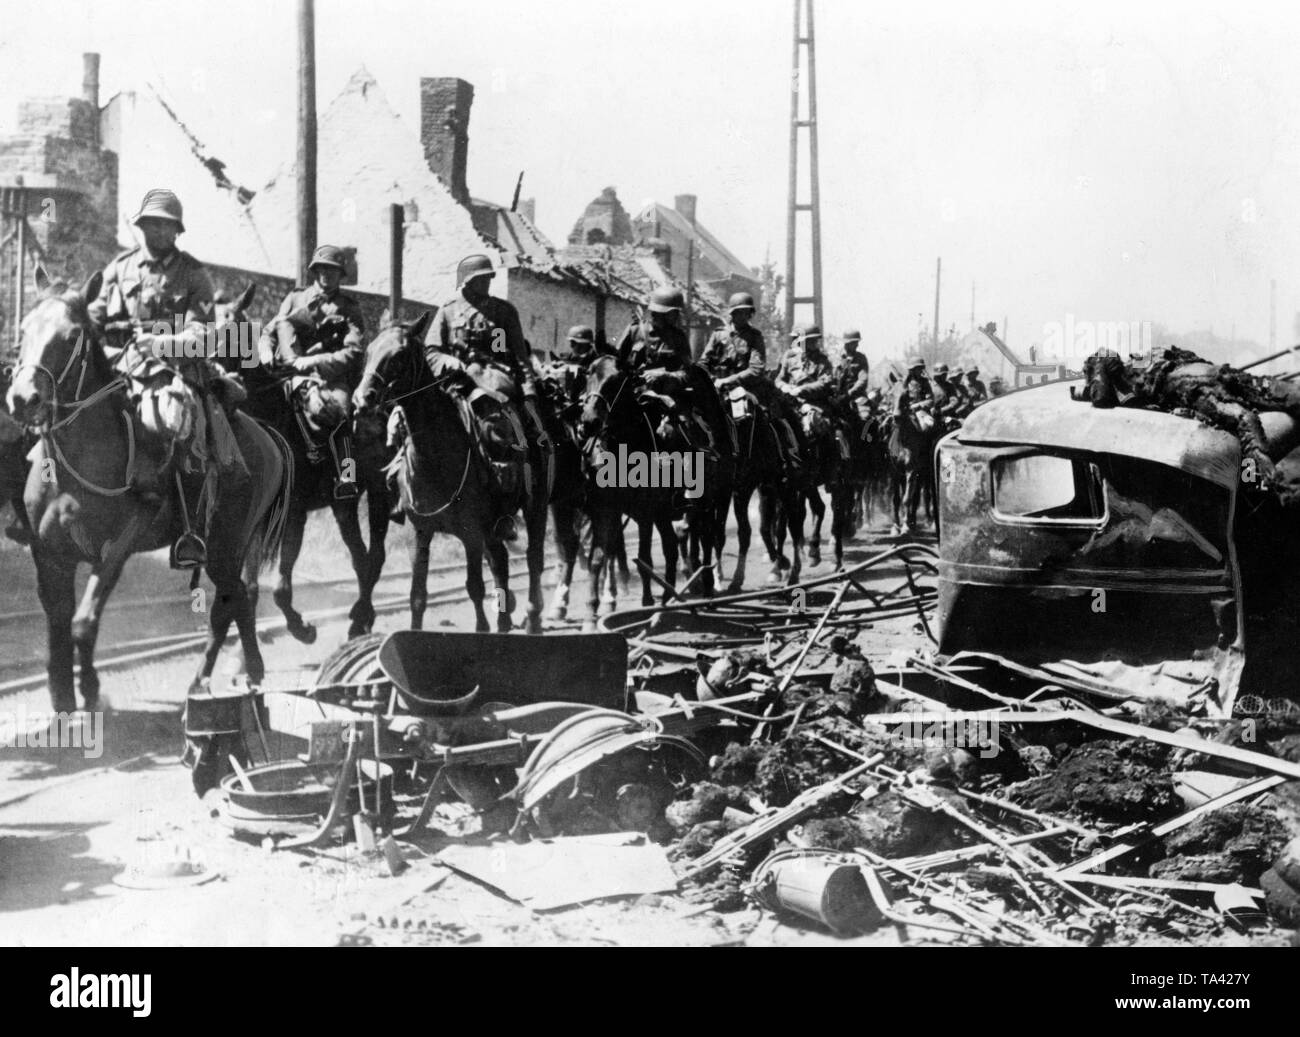 German cavalrymen pass through a French village, right in the picture a destroyed vehicle and the dead crew. Although the Western campaign is more associated with tanks, the Wehrmacht also deployed a complete cavalry division. - Stock Image